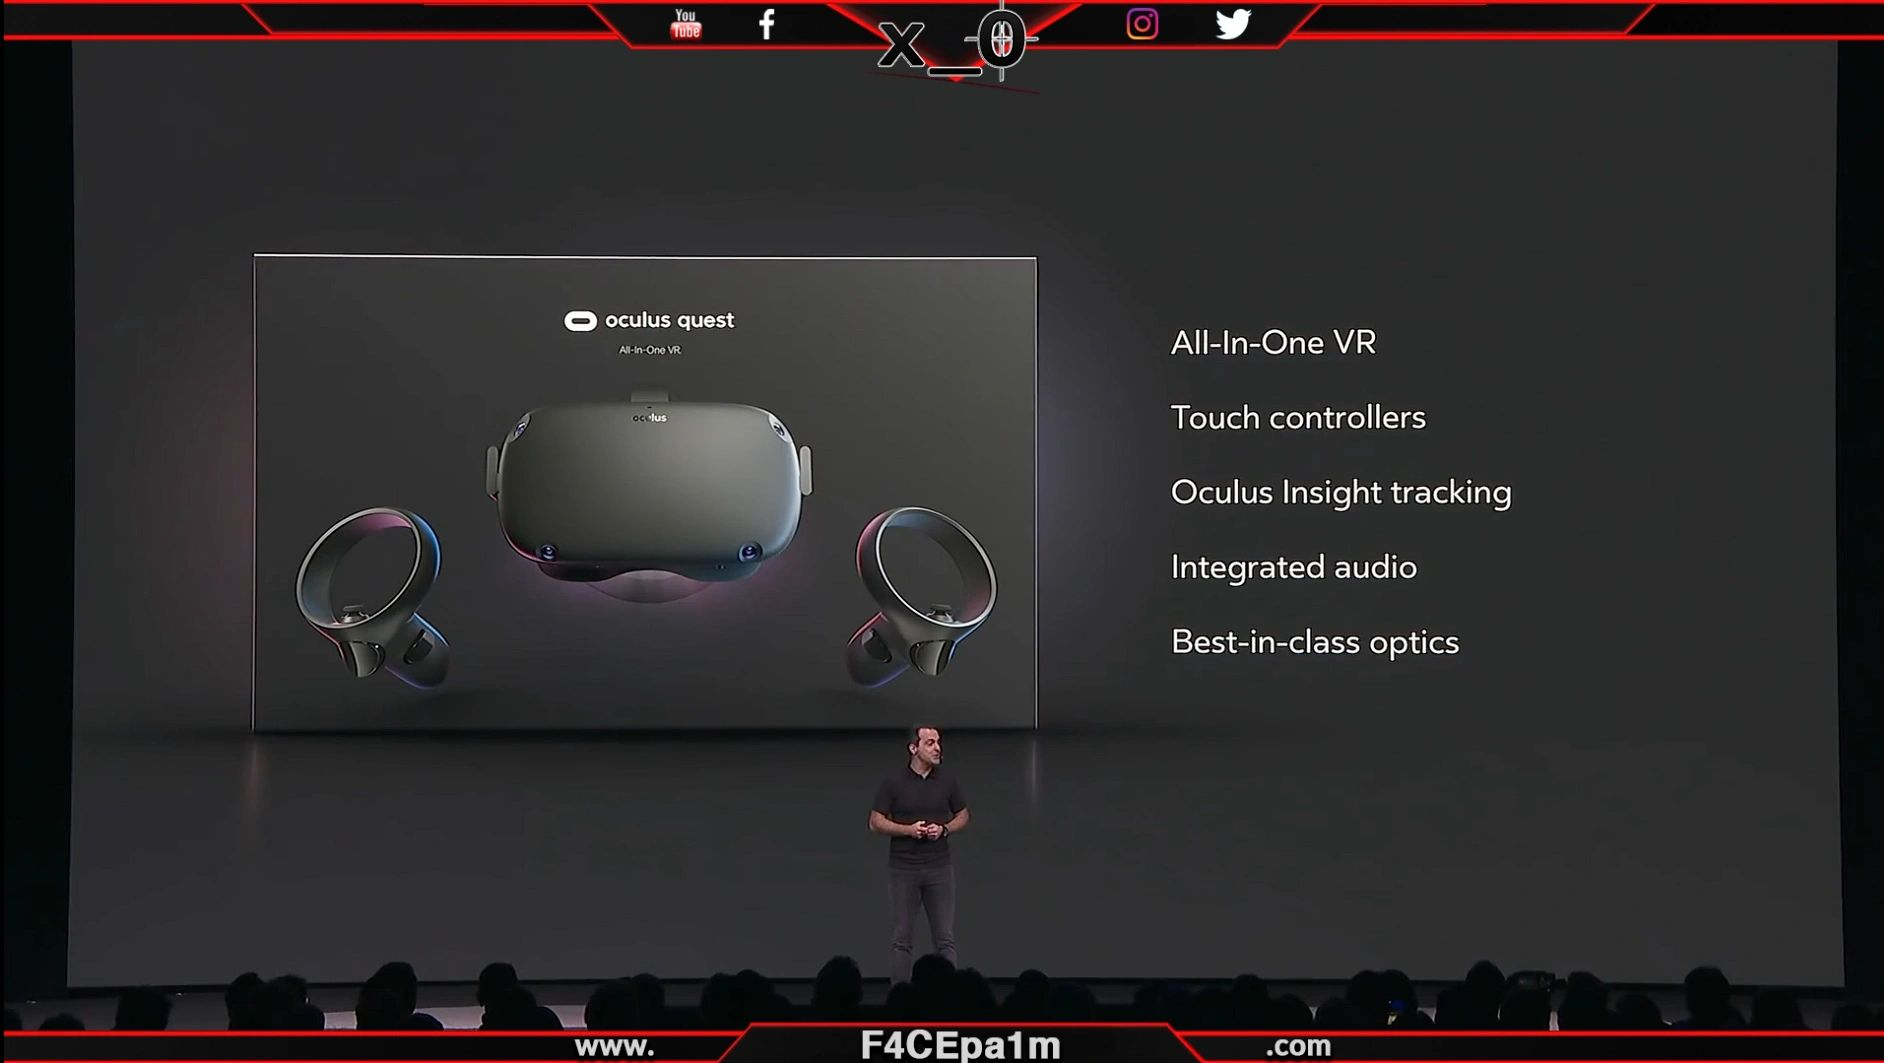 OCULUS QUEST | EVERYTHING we know